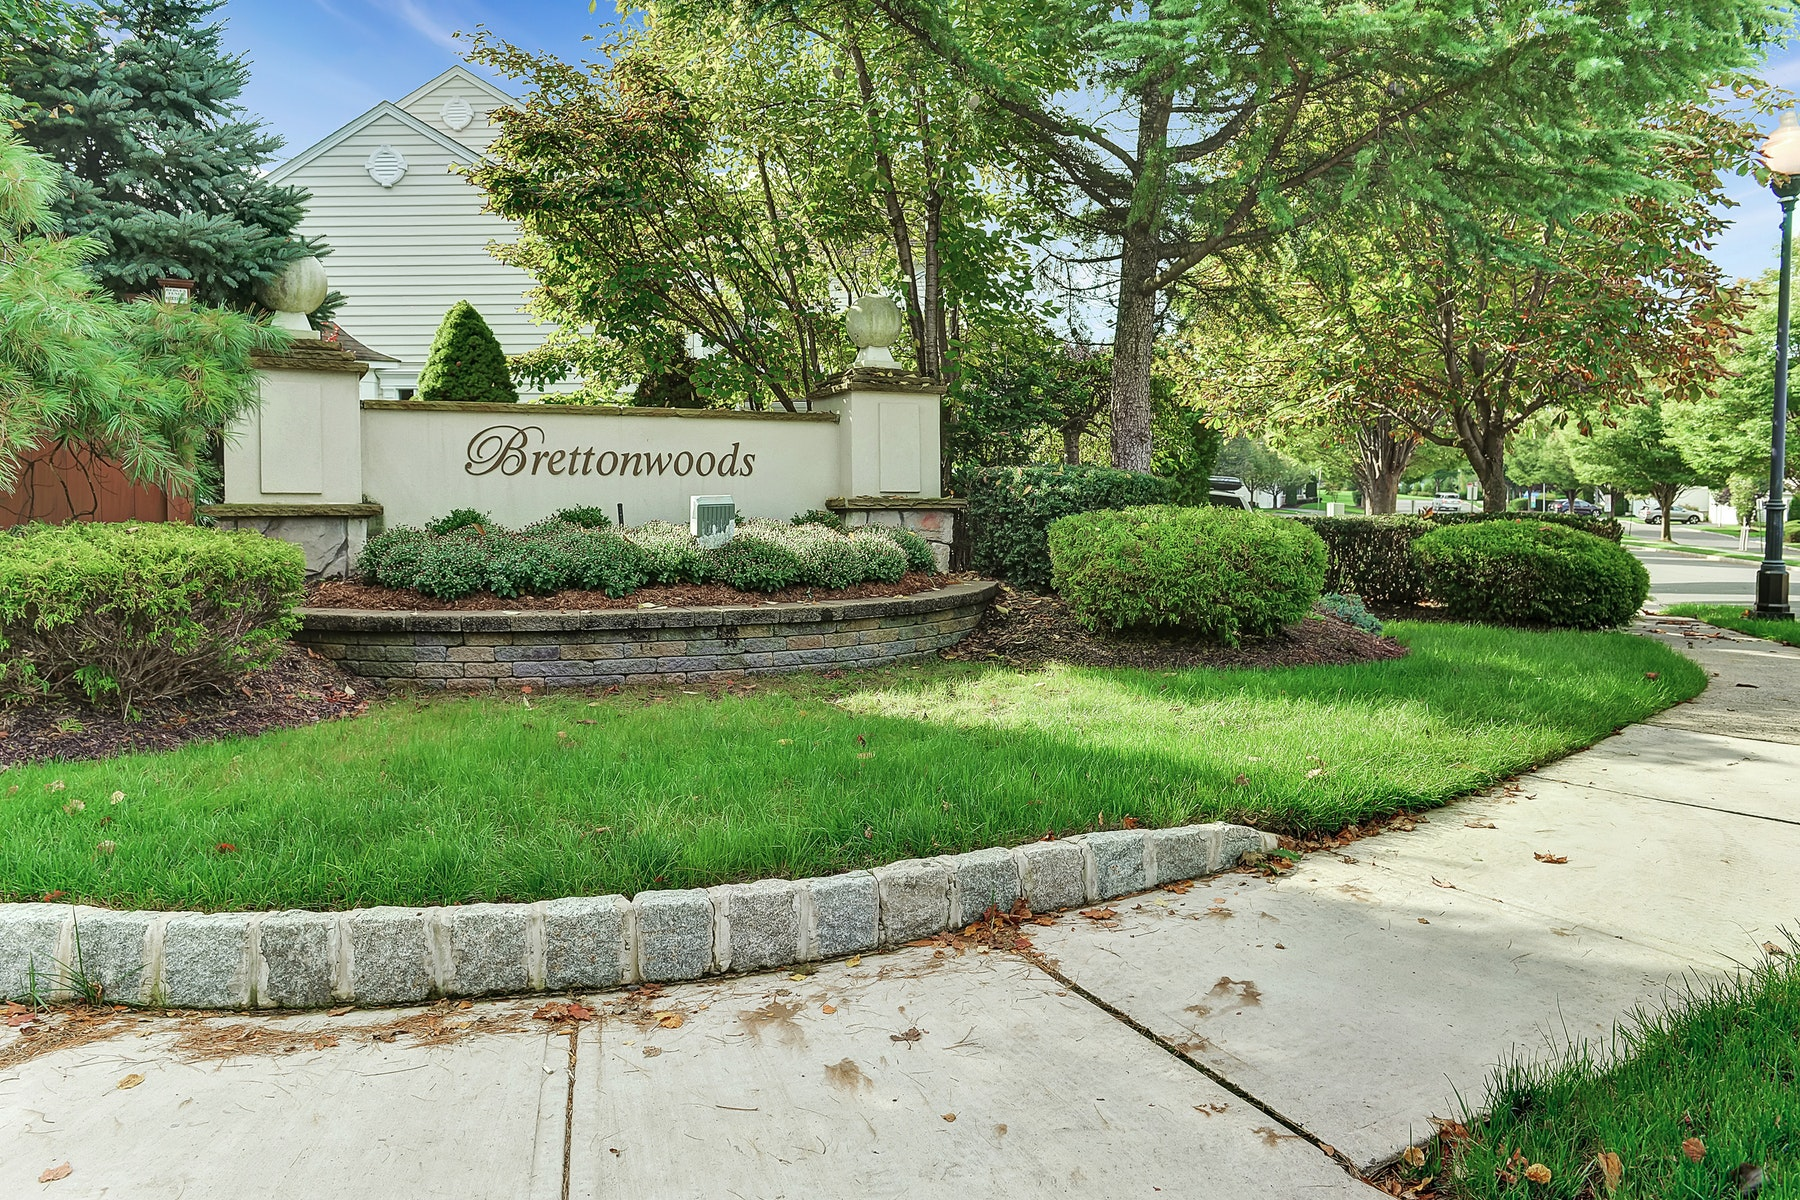 Single Family Home for Sale at Brettonwoods Community 6 Mulberry Court, Paramus, New Jersey 07652 United States